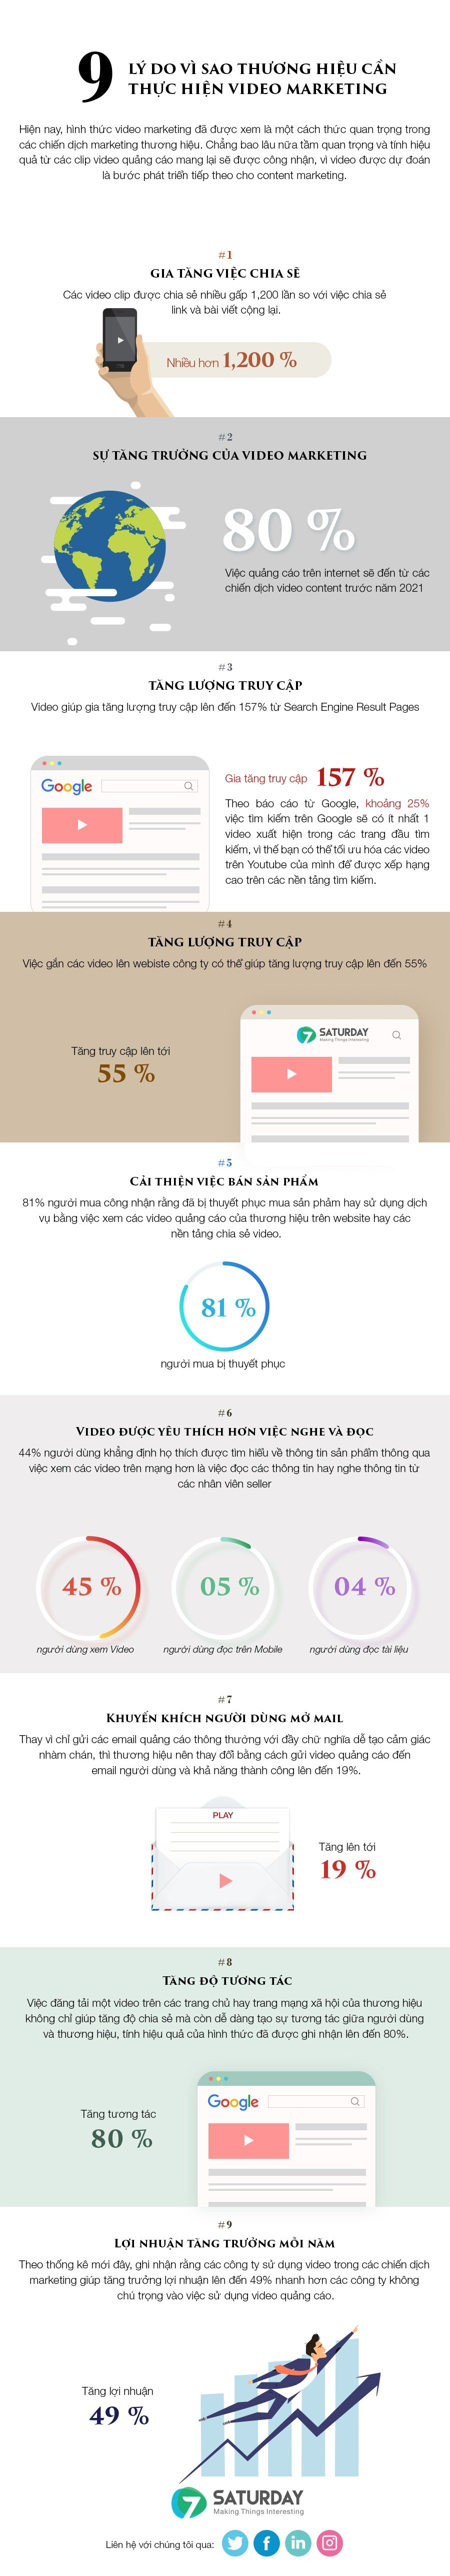 9-Ly-do-can-VIDEO-MARKETING